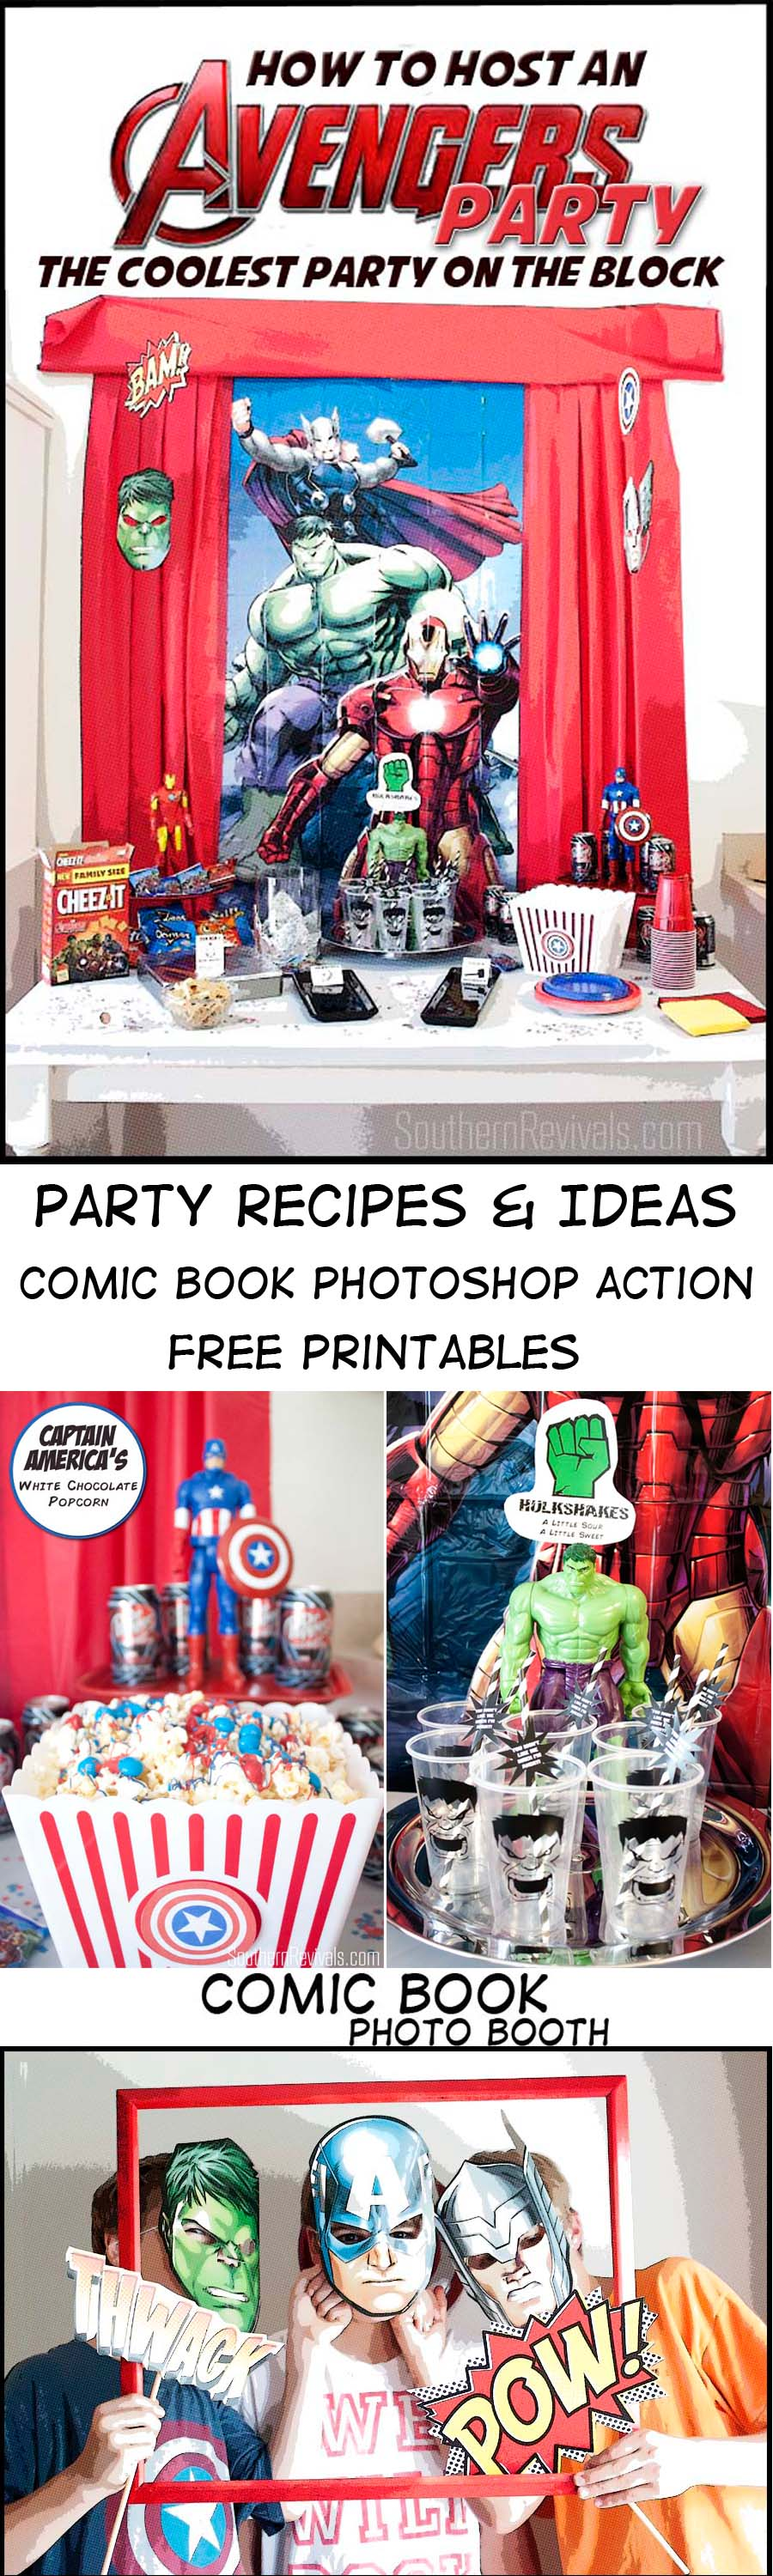 Avengers Movie Party Ideas